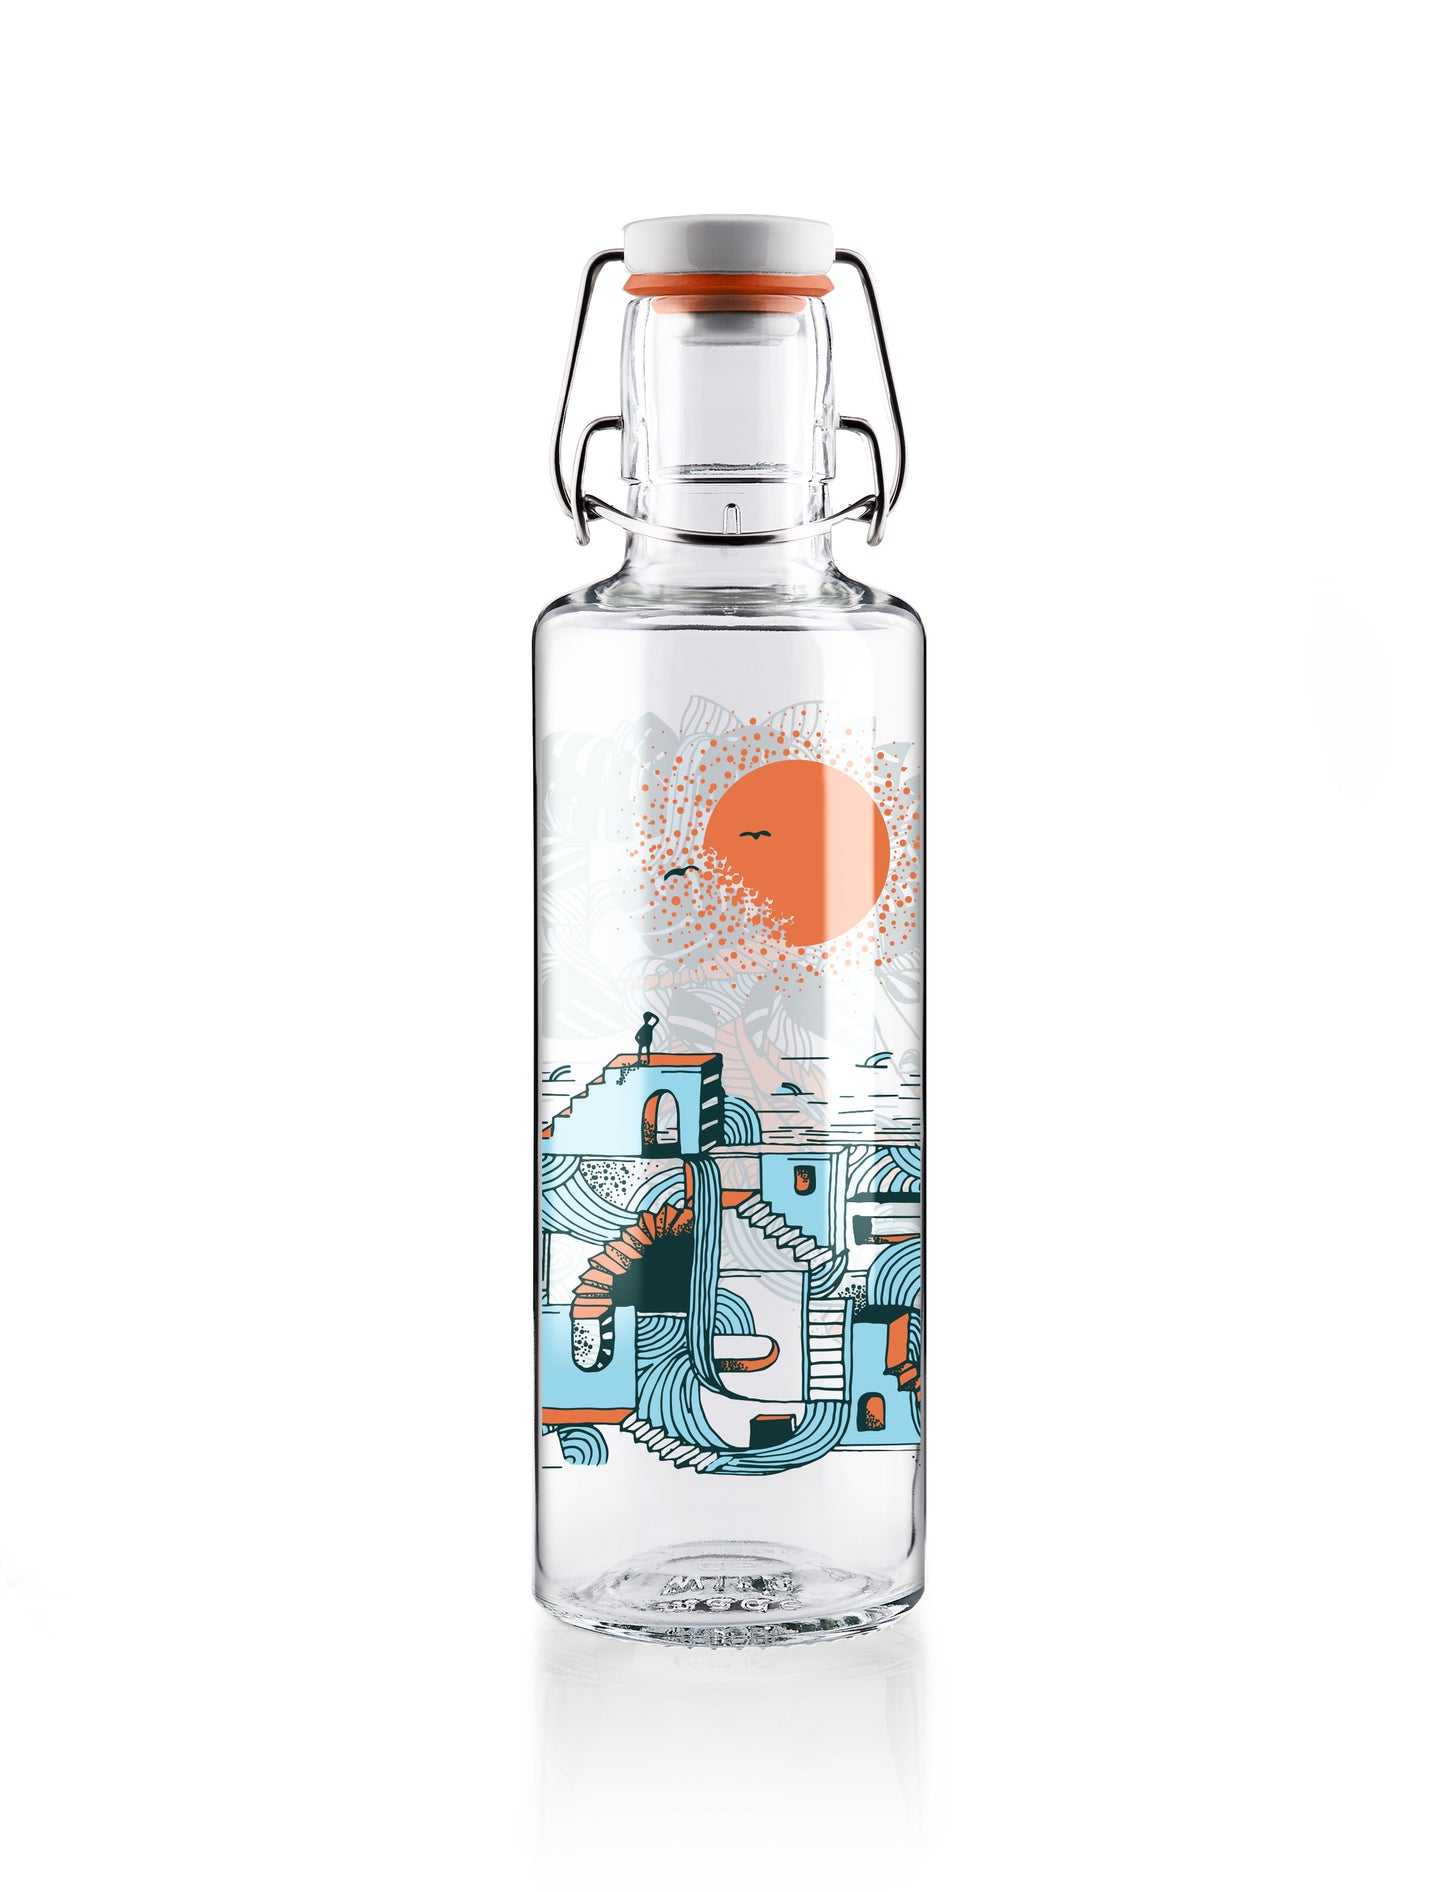 Soulbottle waterfall city 0,6l Glasflasche